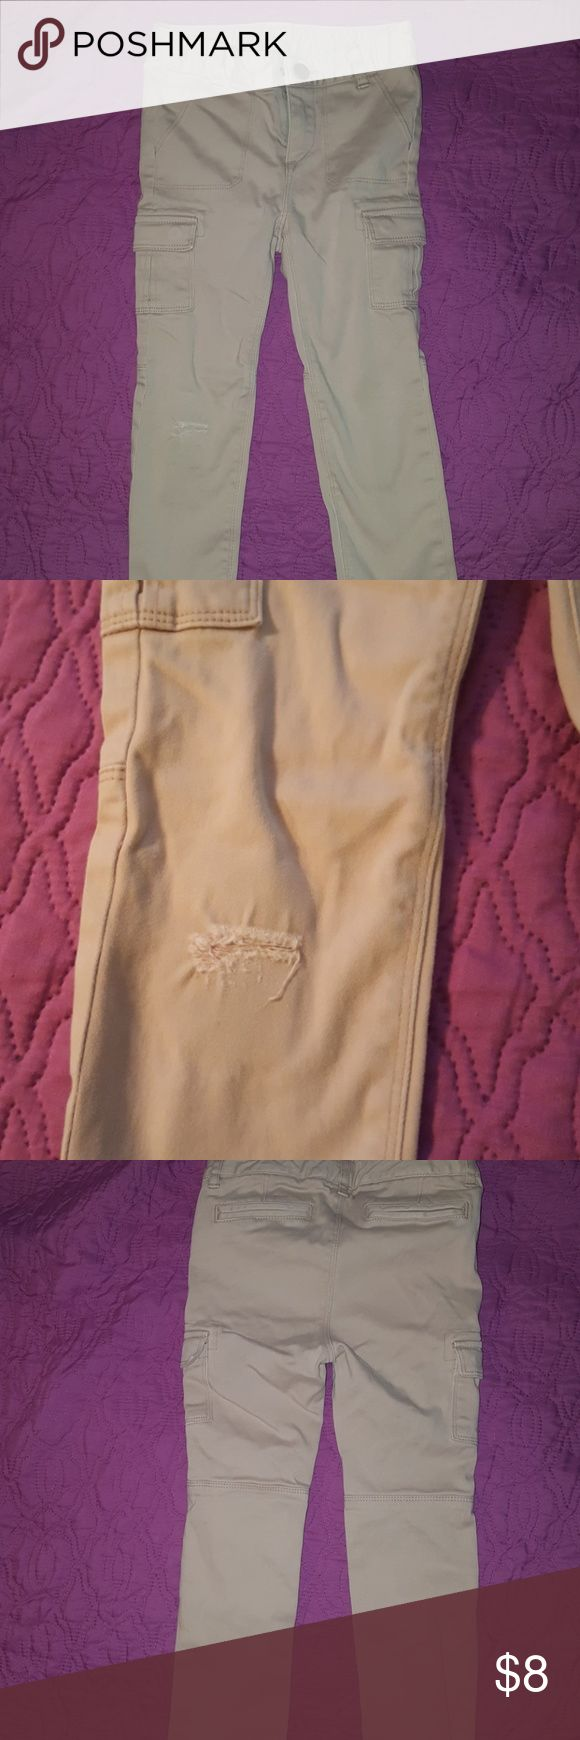 Girls 5t khaki jegging Gap khaki jeggings, size 5t  Has some wear in the knee, I put a pink patch underneath, priced as accordingly GAP Bottoms Leggings